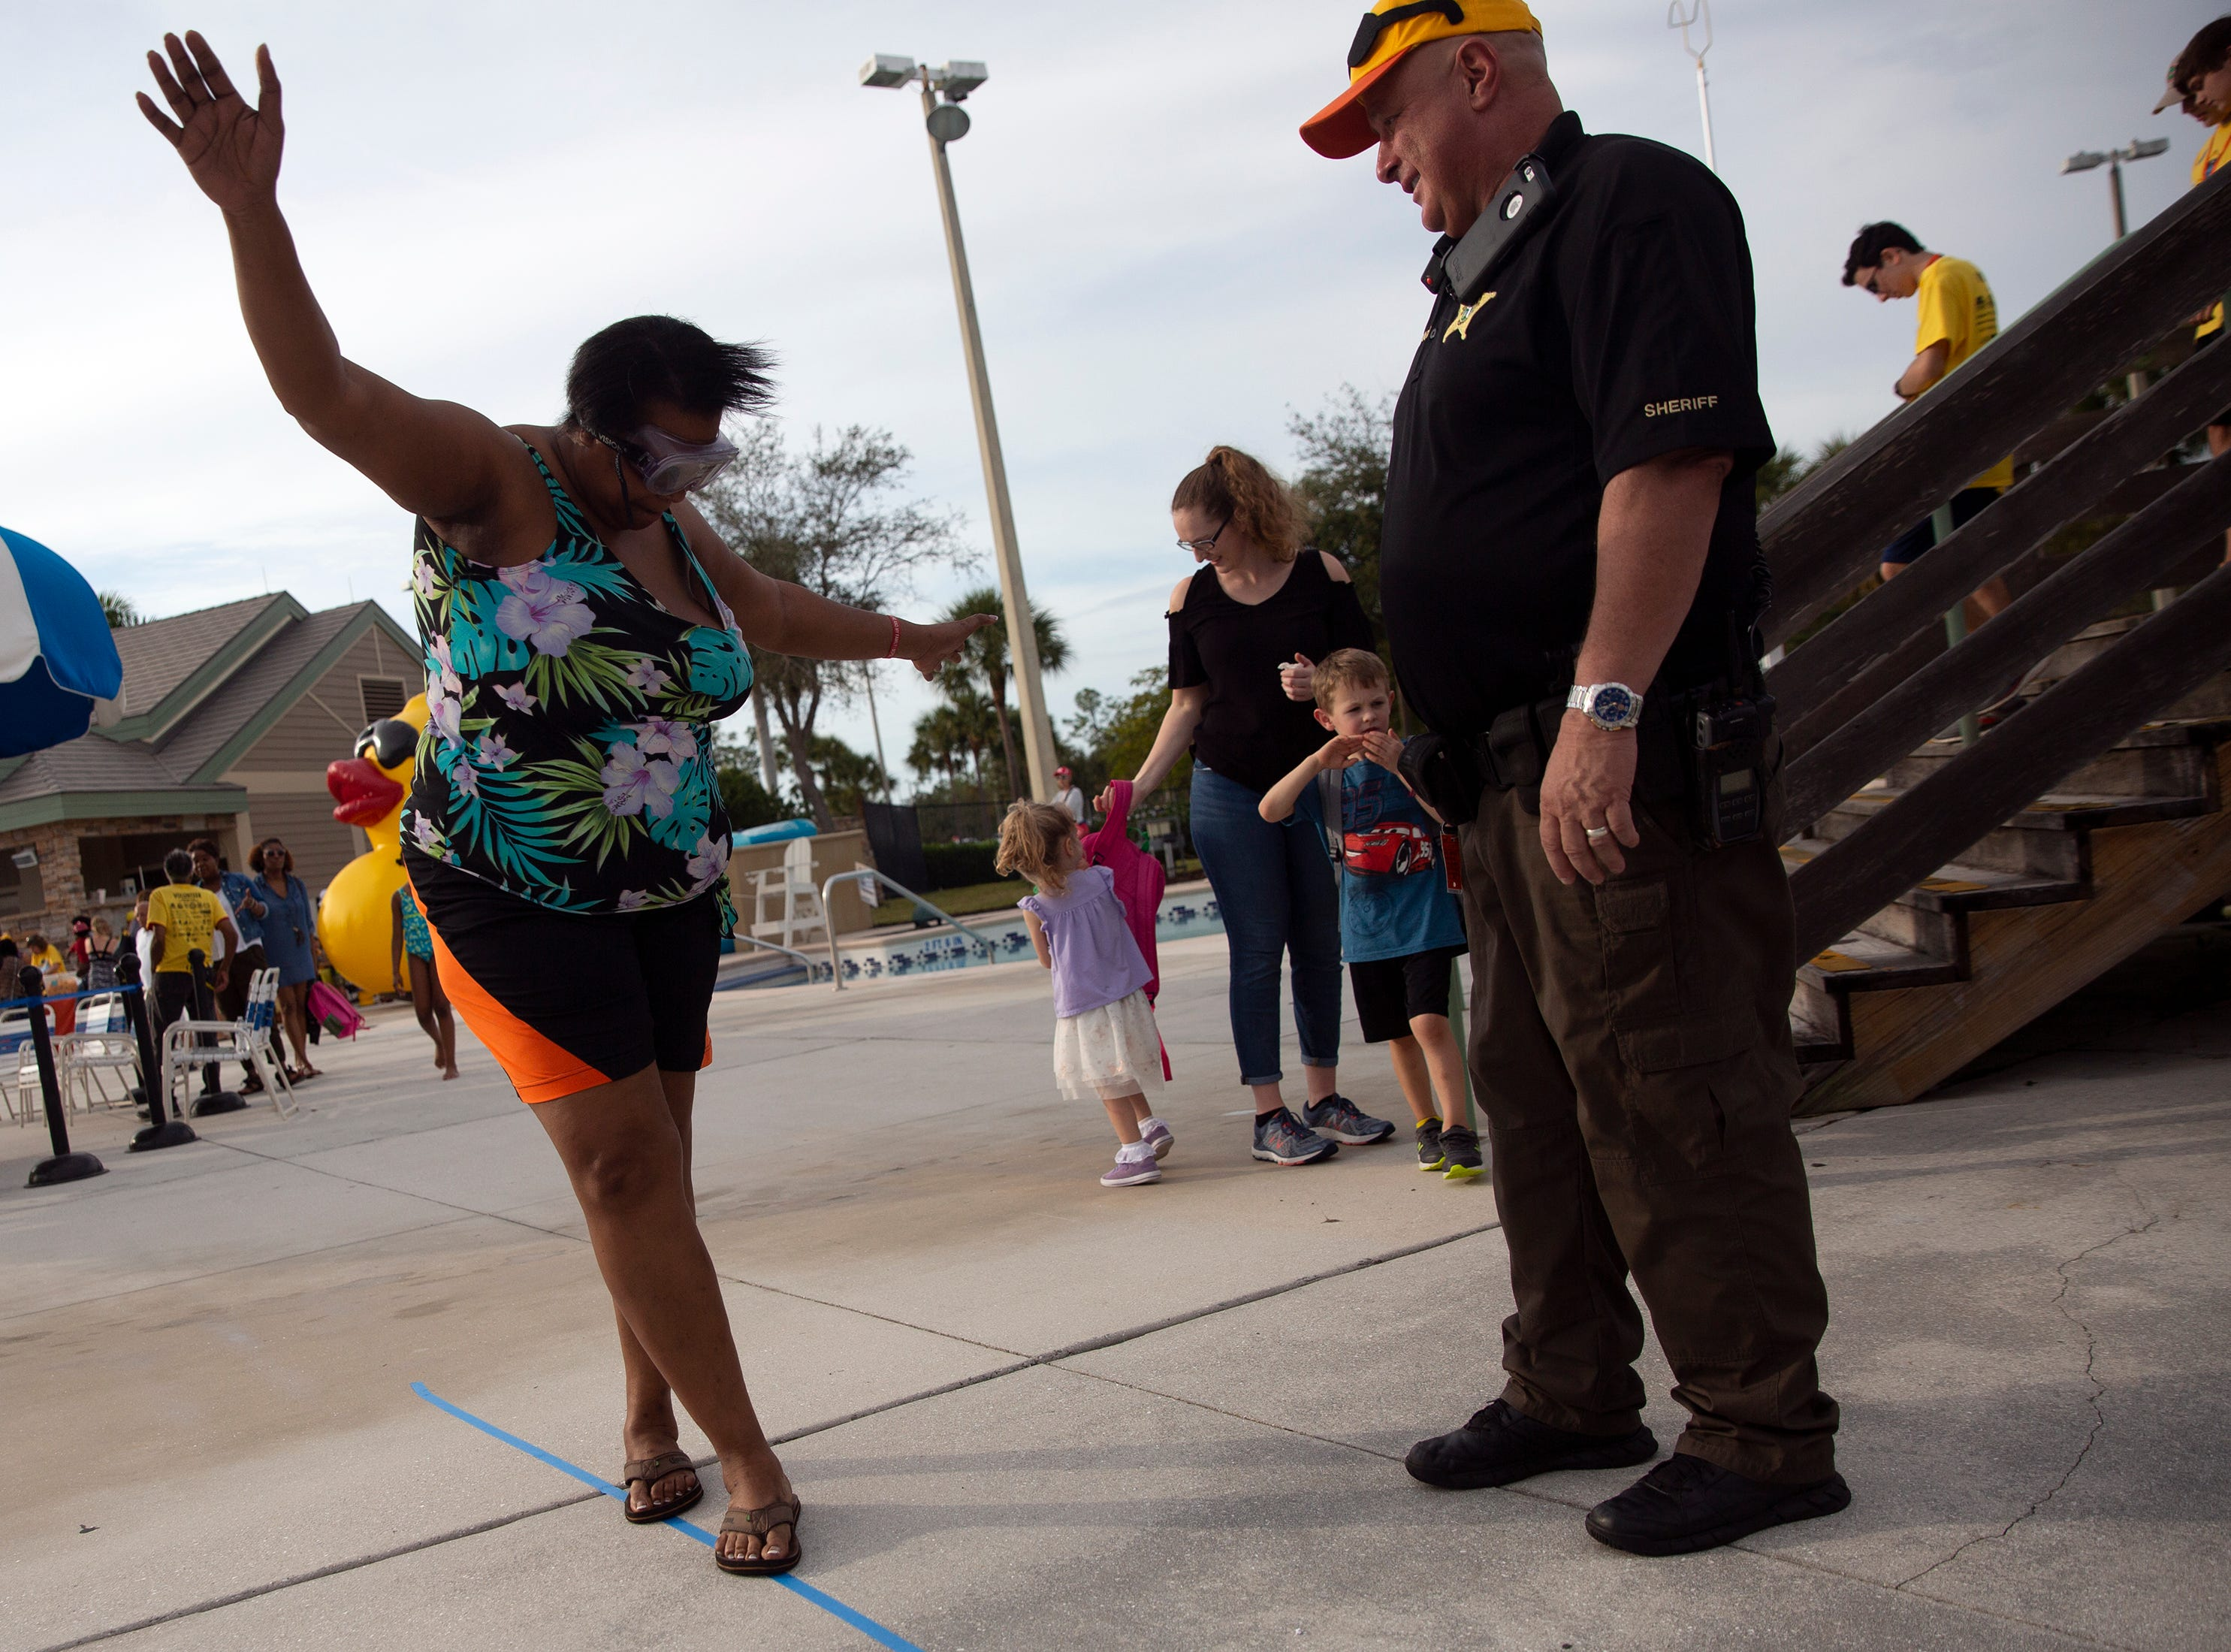 Marie Jerome attempts to walk a straight line using impairment goggles under the observation of Collier County Sheriff's Cpl. Jim Klewicki during the Great Naples Rubber Duck Race and Water Safety Festival on Saturday, Feb. 2, 2019, at the Sun-N-Fun Lagoon during in East Naples.